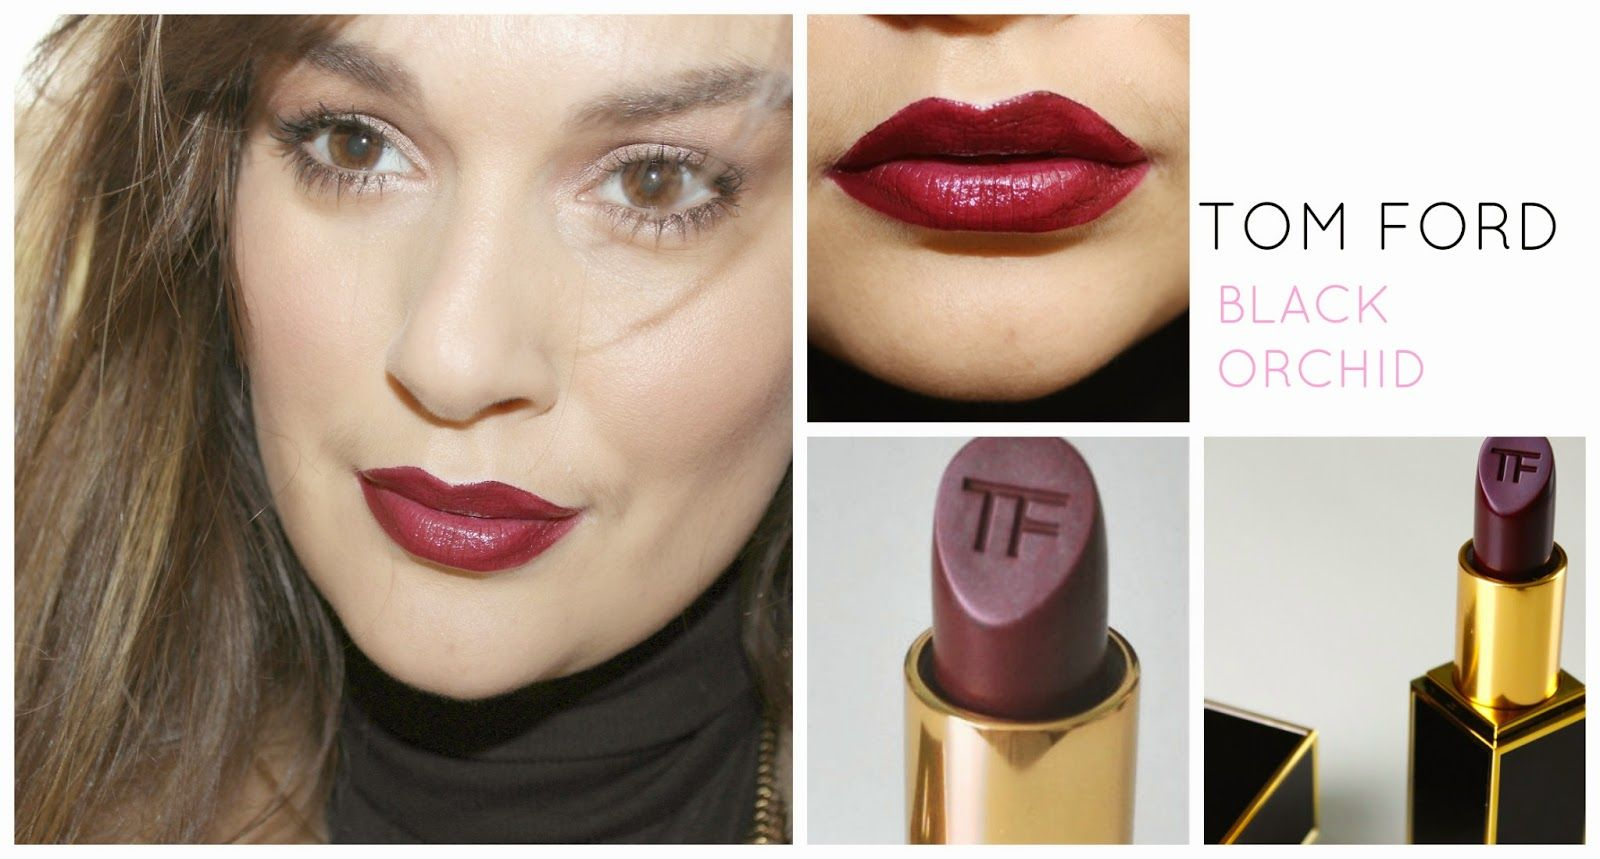 tom ford black orchid lipstick temptalia the image. Cars Review. Best American Auto & Cars Review